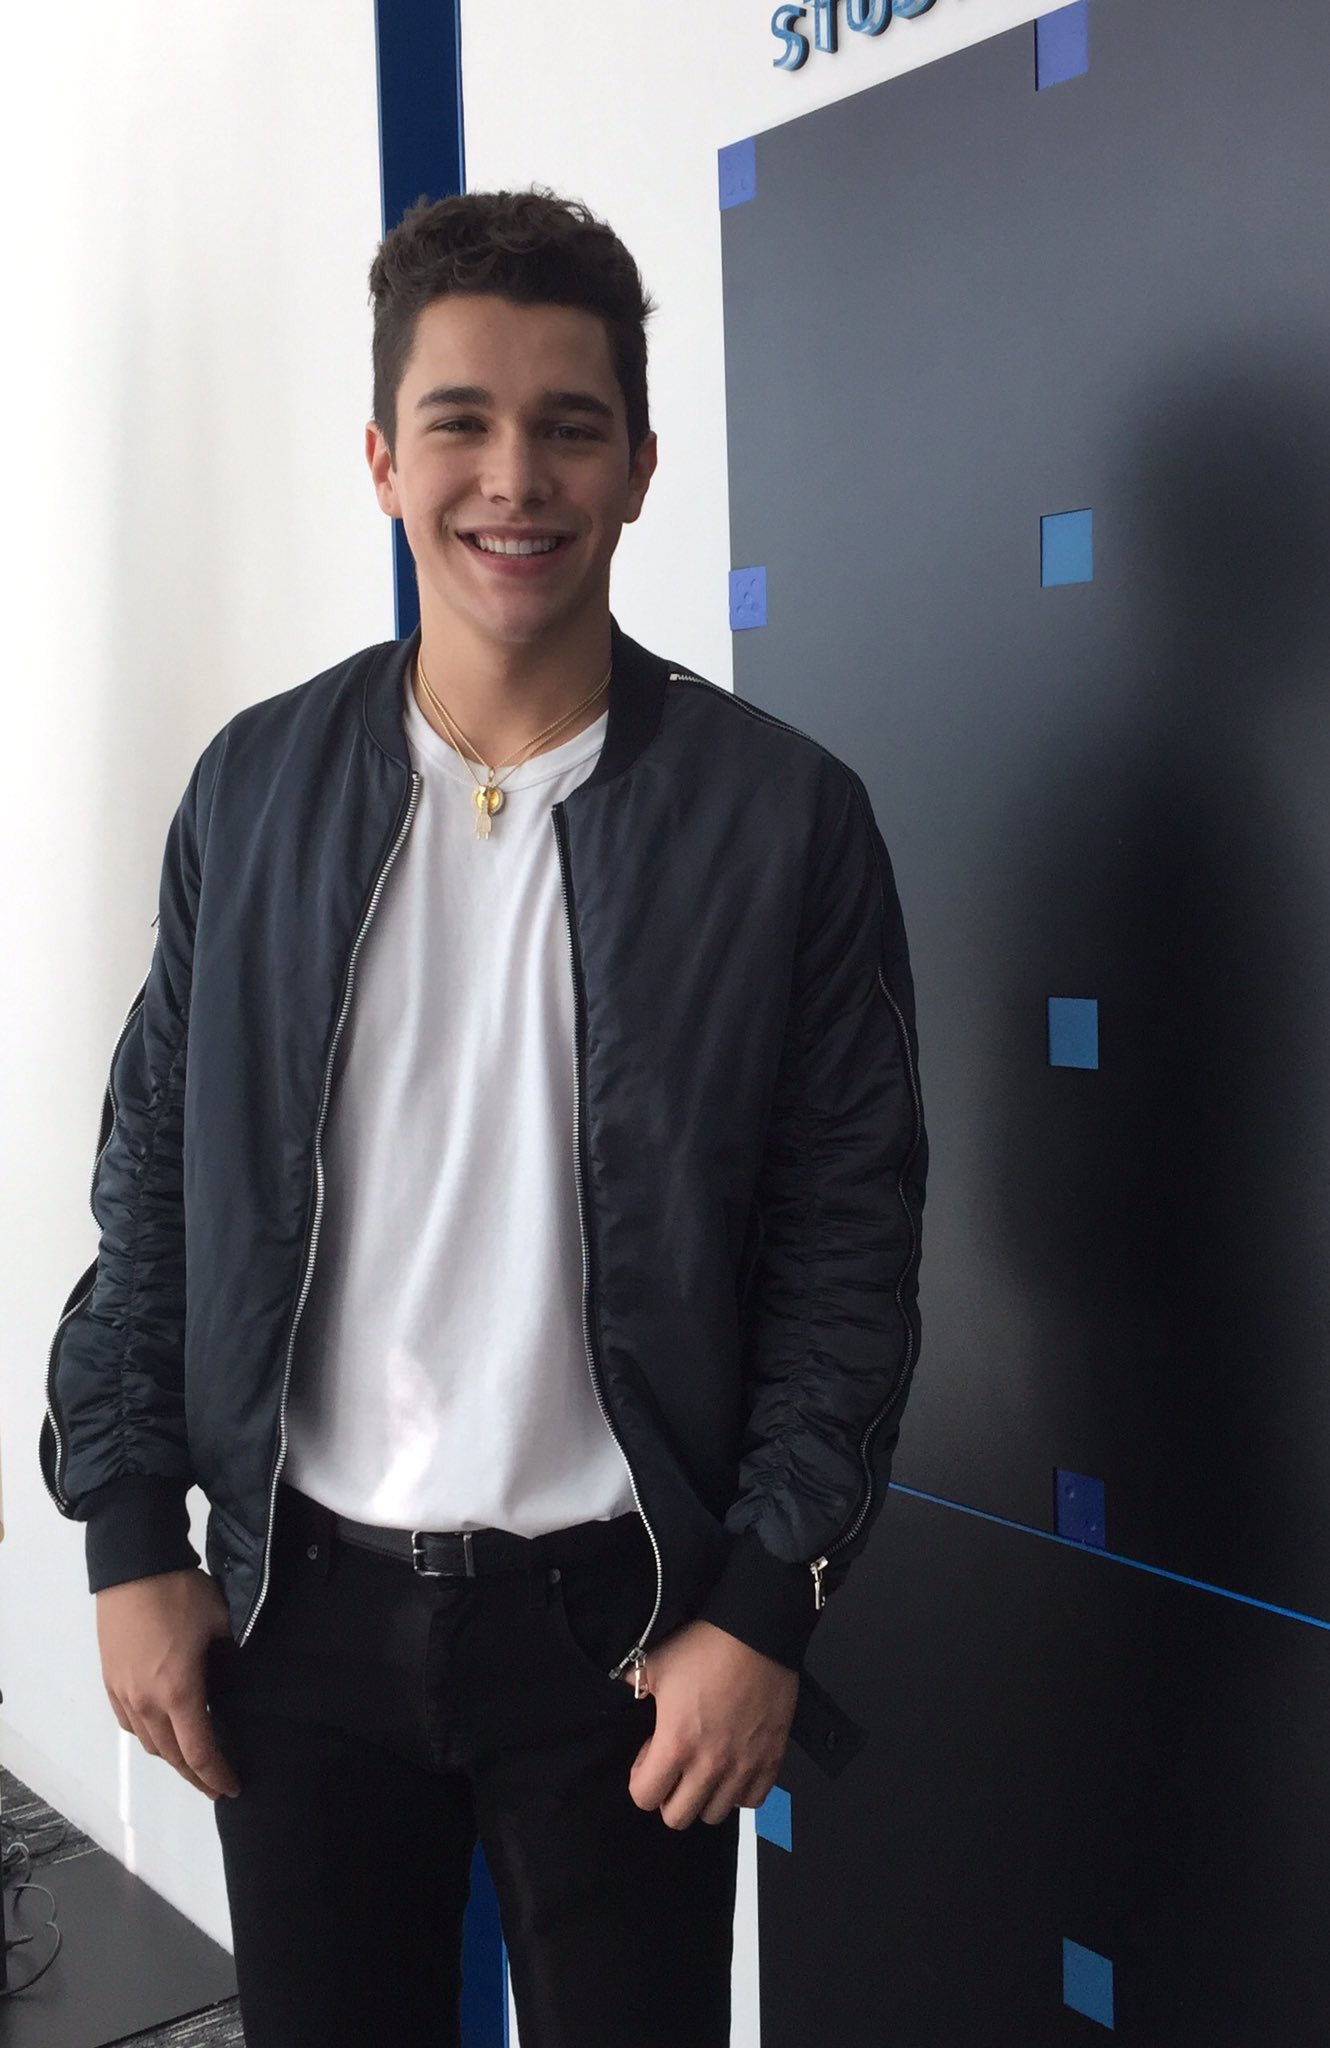 Who is austin mahone dating 2019